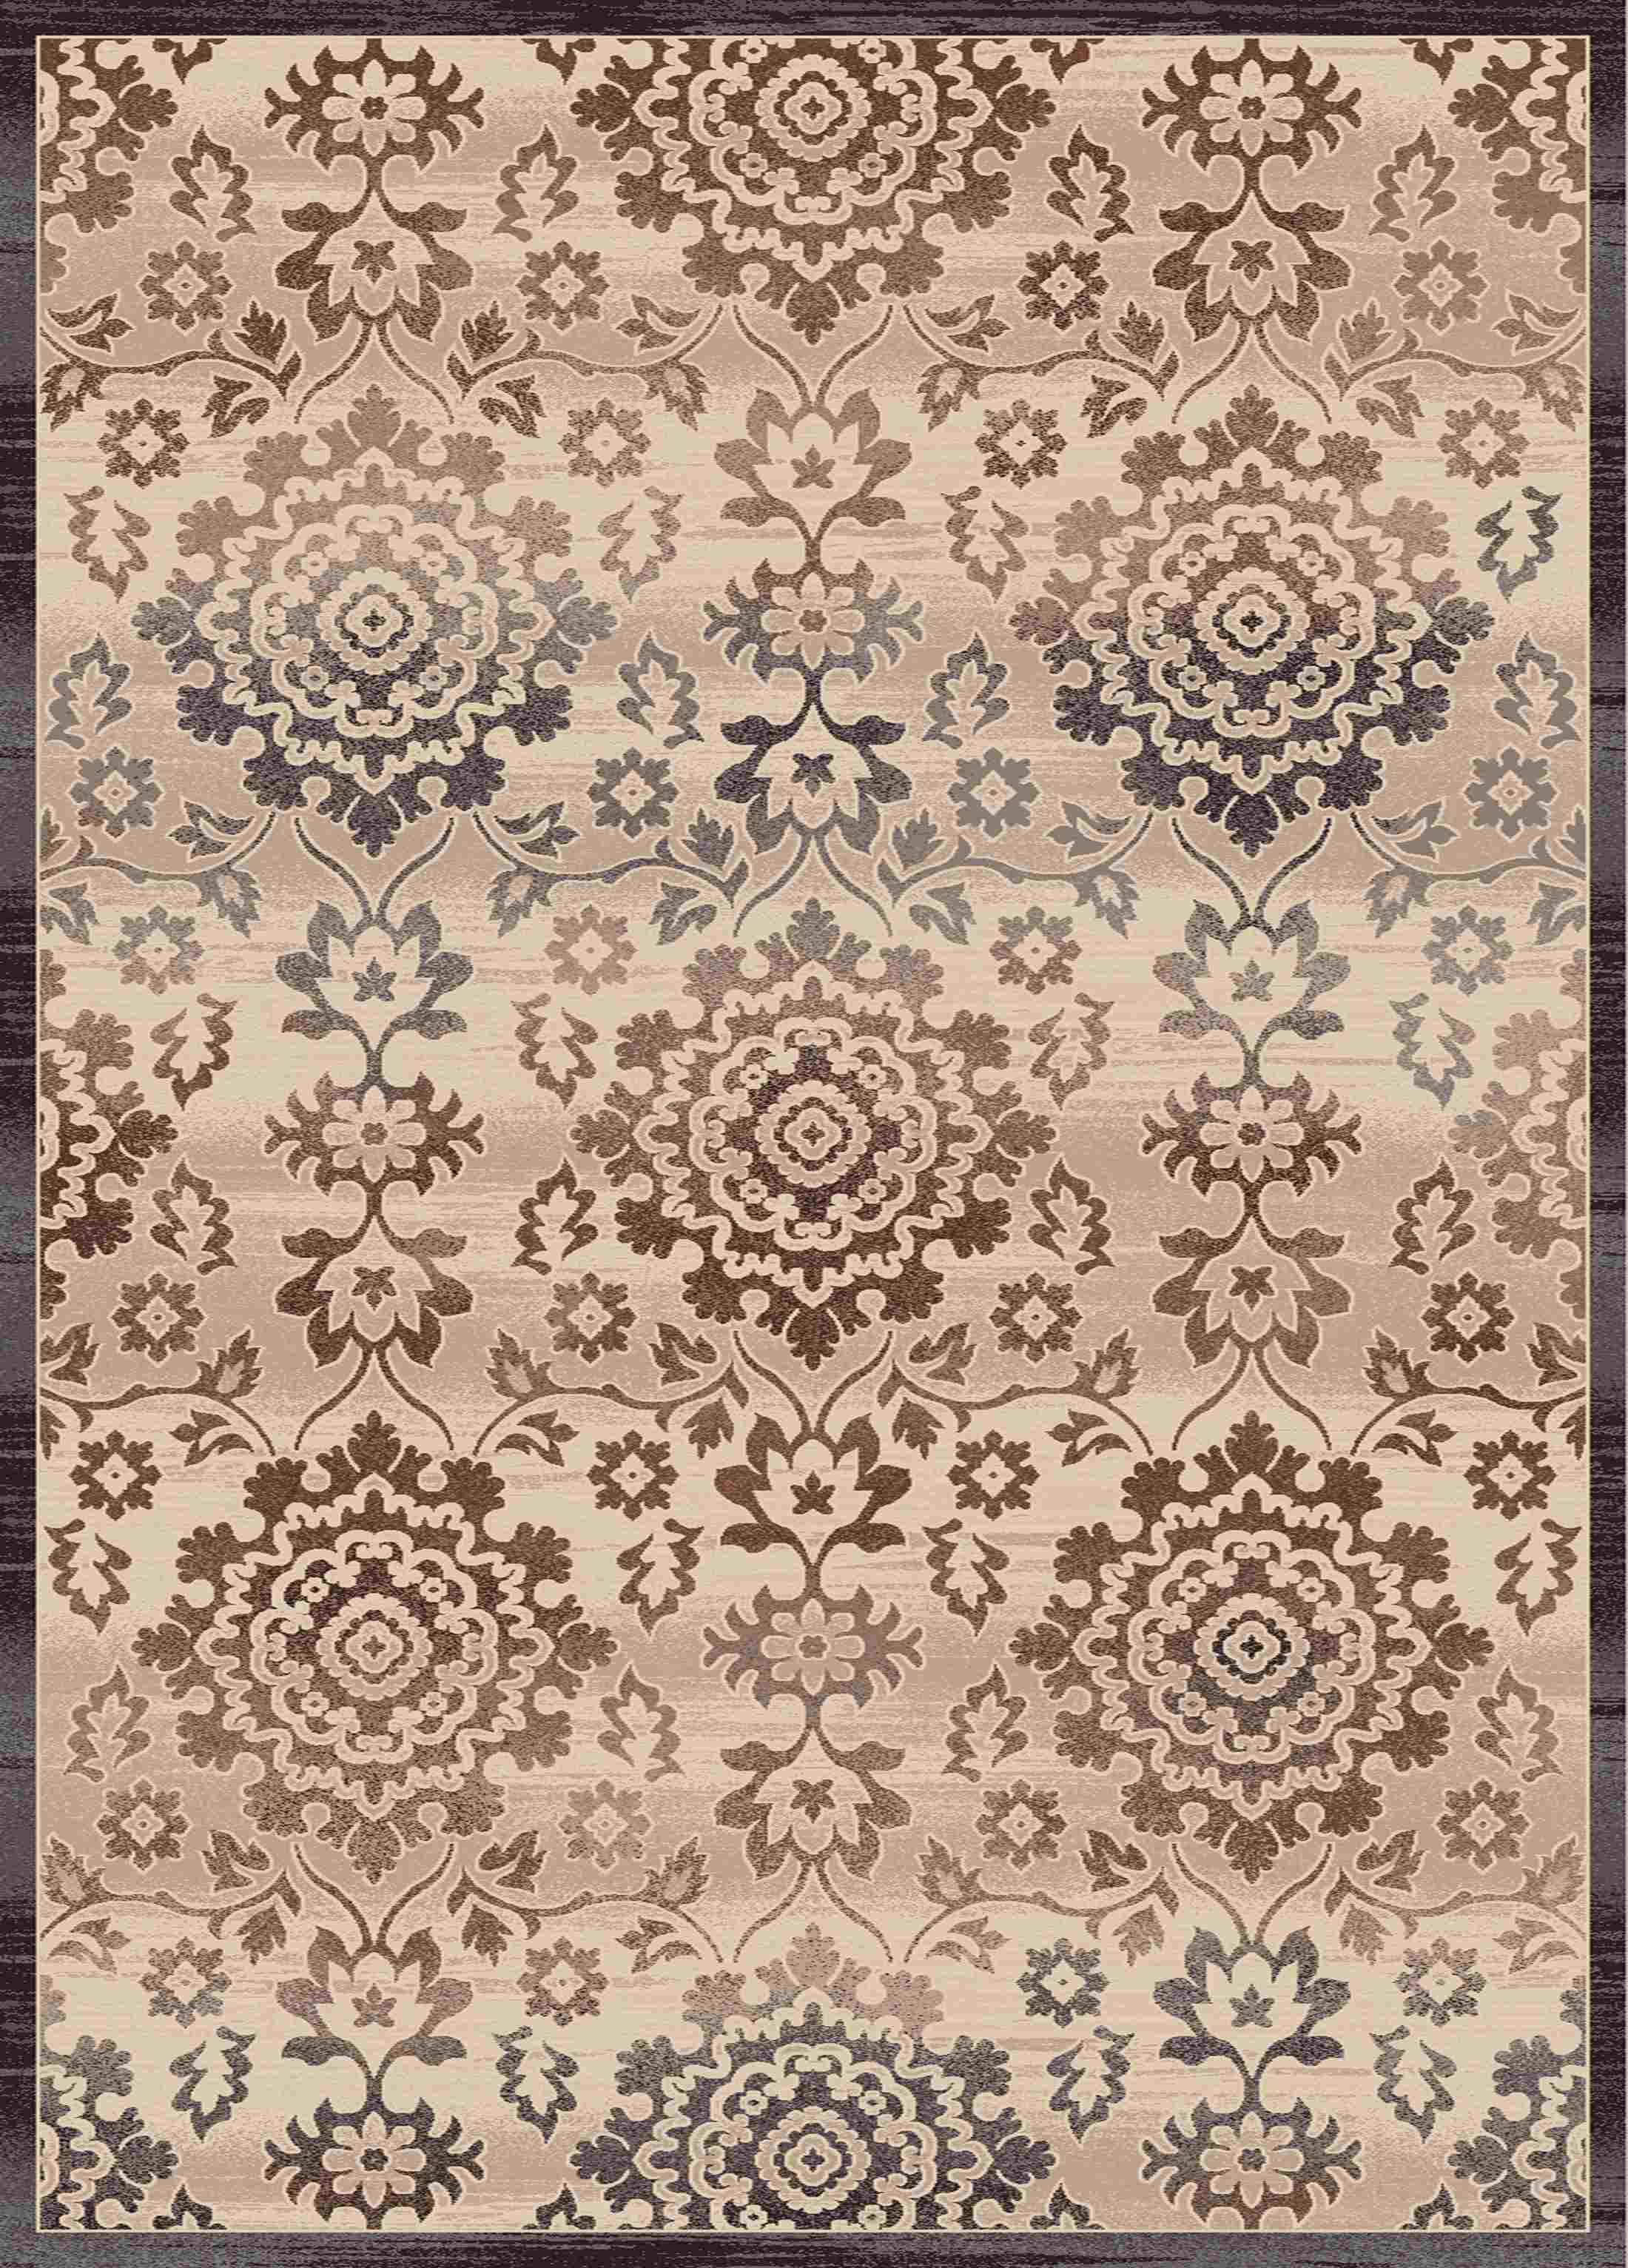 Dynamic Rugs Treasure Medallion/damask Cream 4362 Area Rug